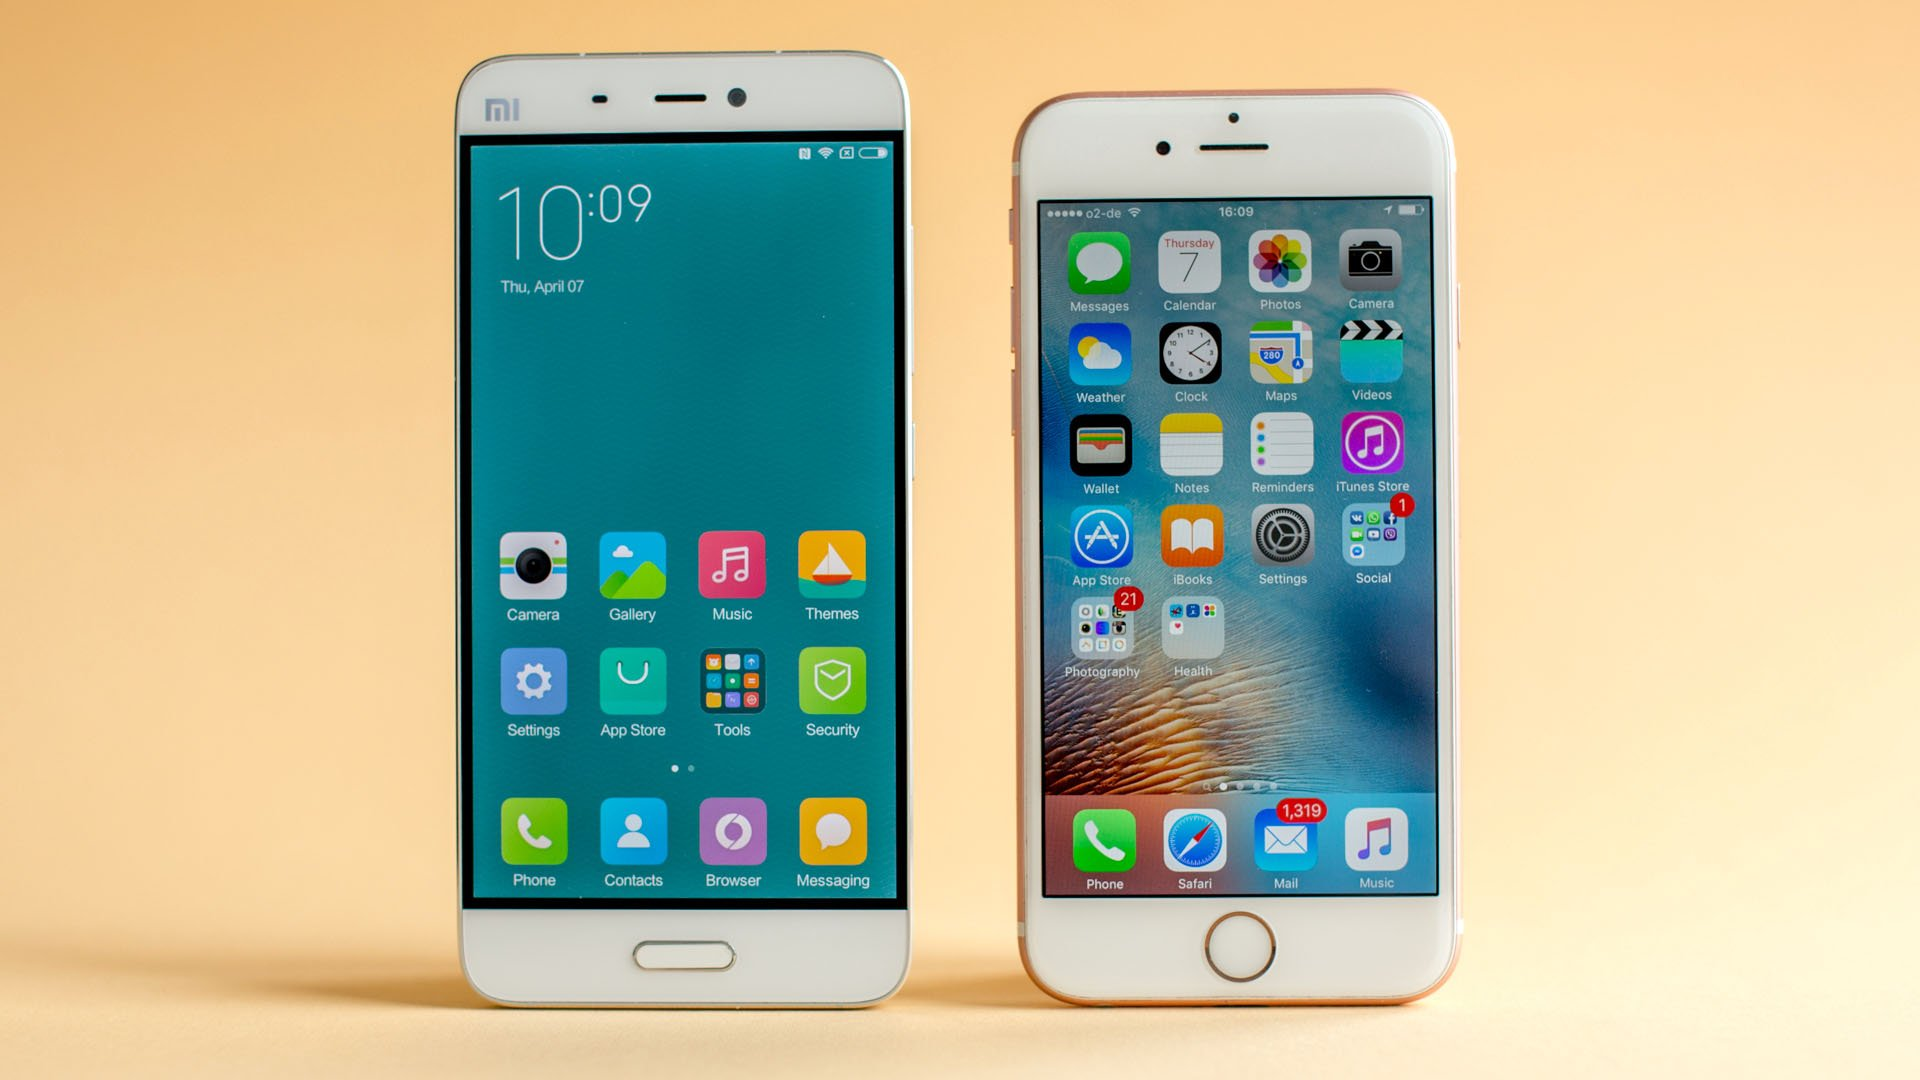 xiaomi mi5 vs iphone 6s